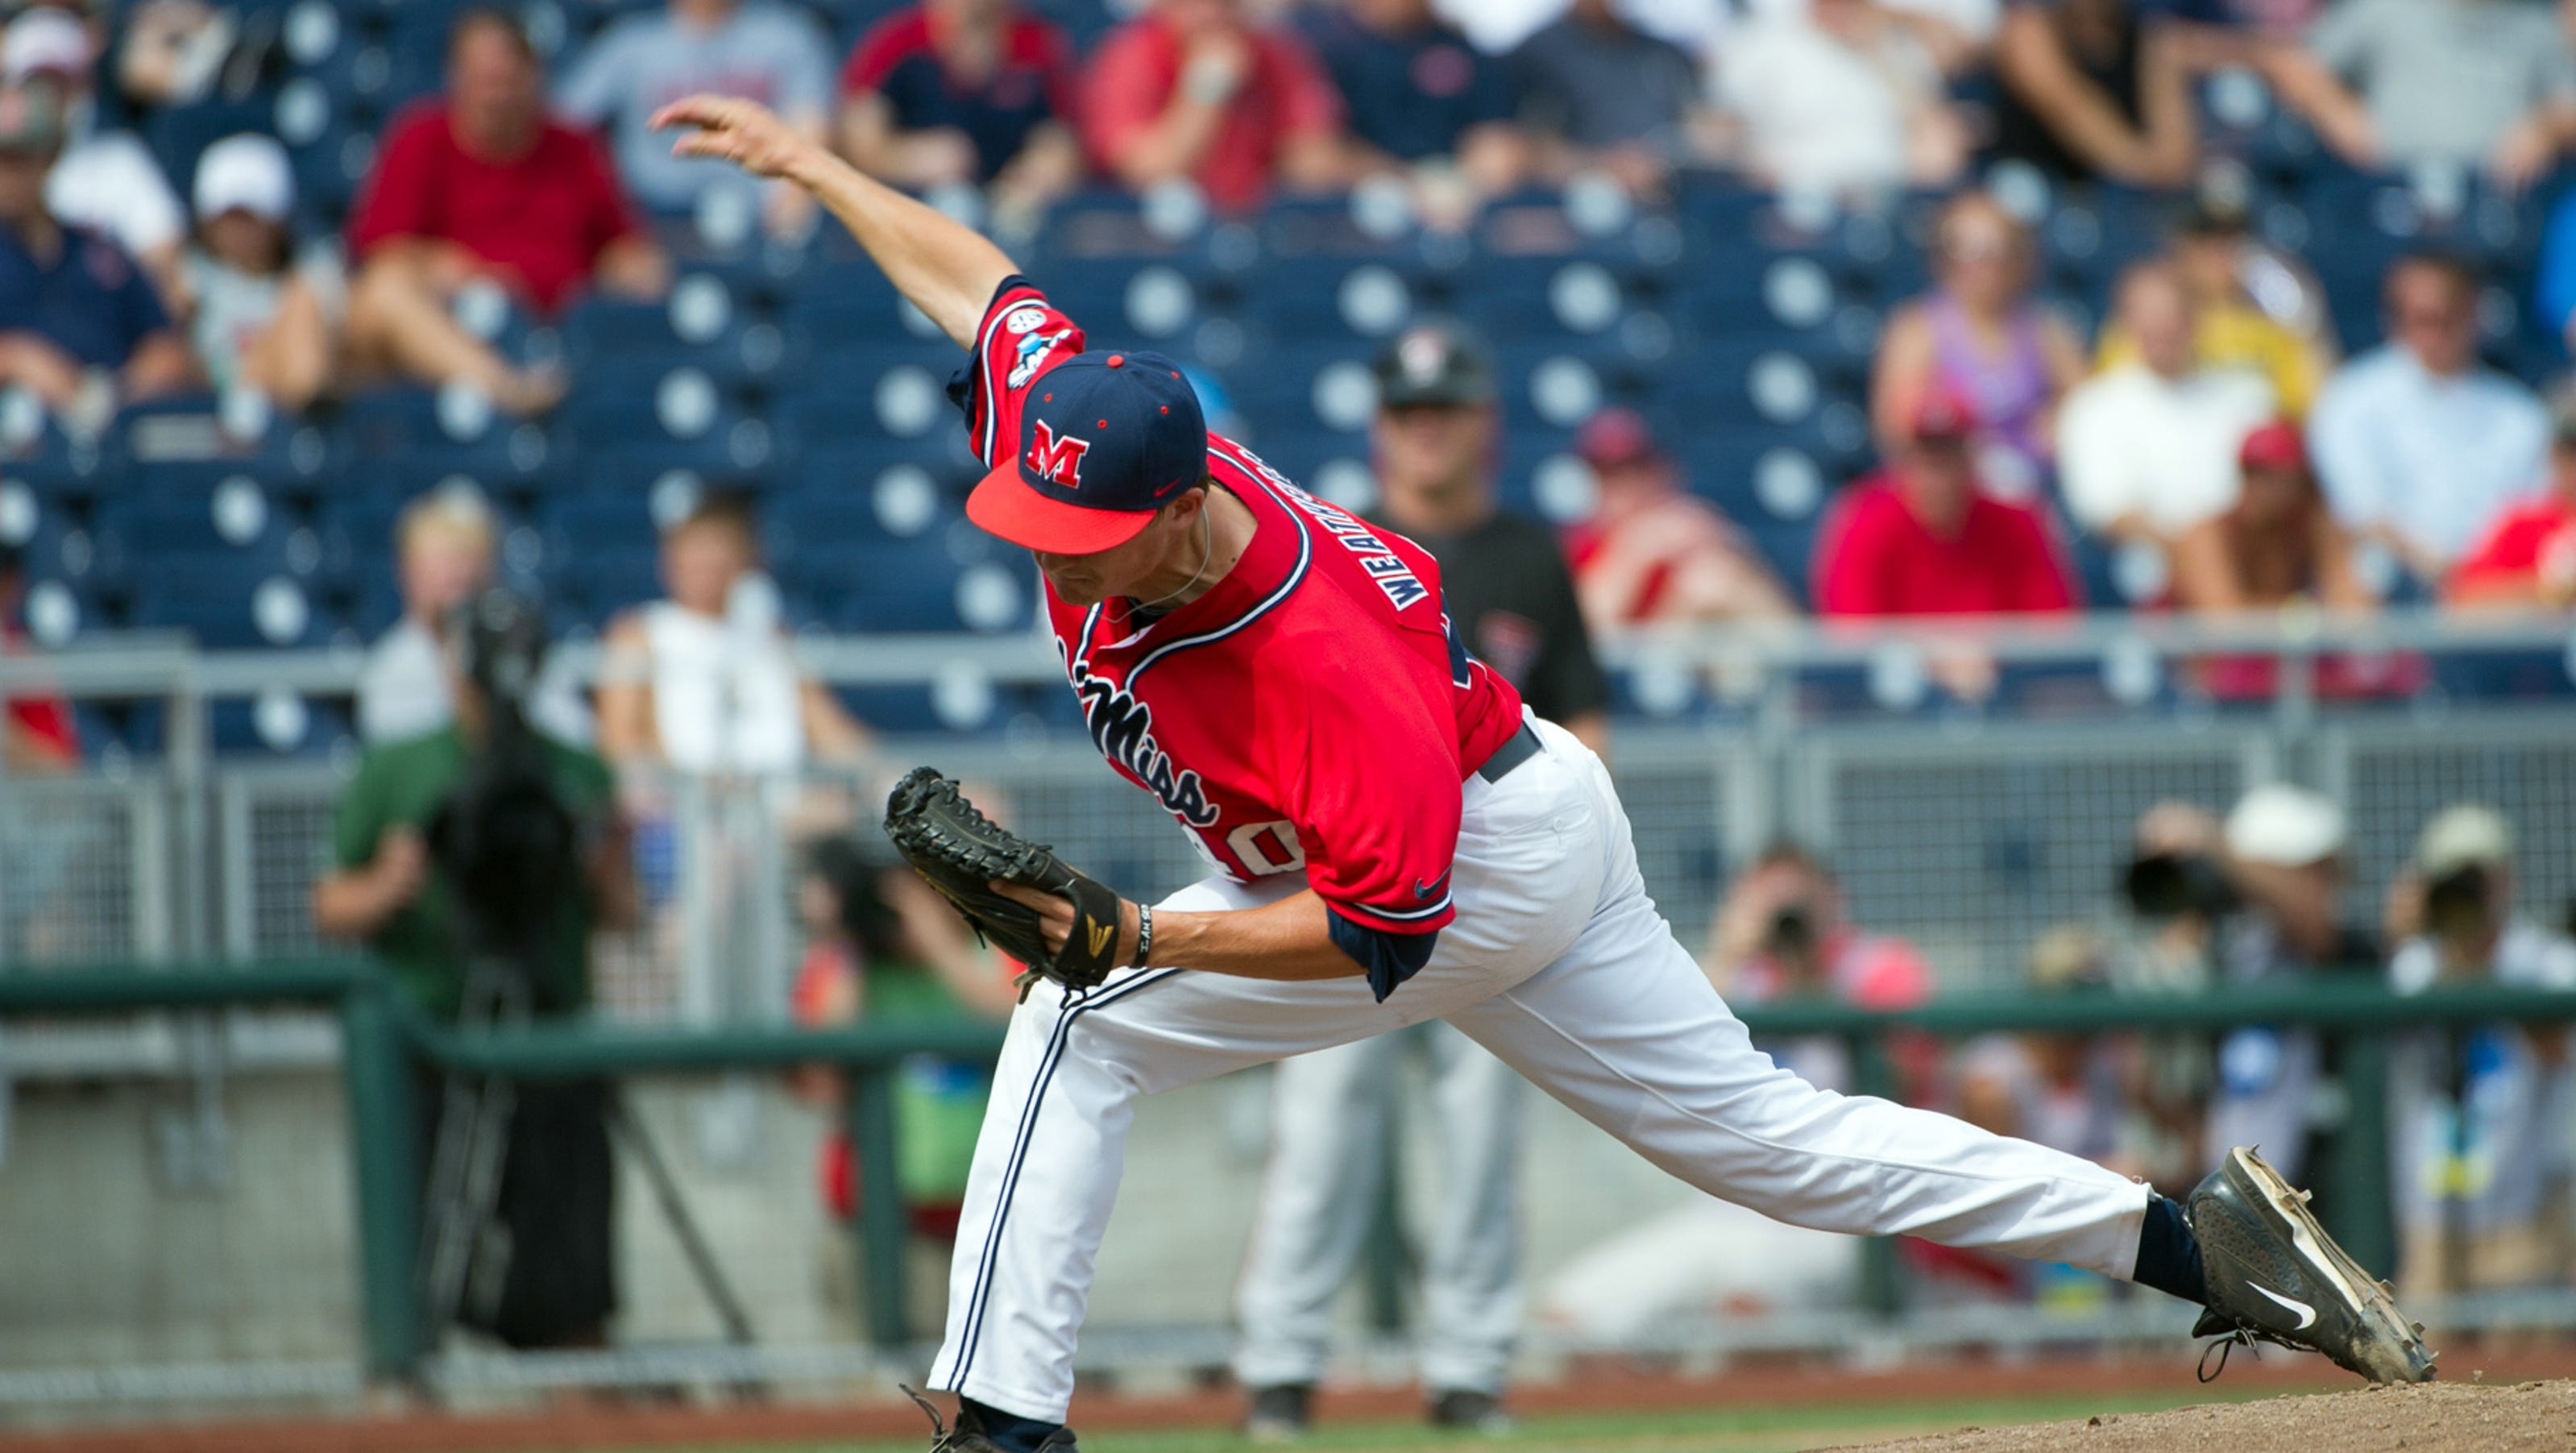 Ole Miss wins 2-1 in 9th, ousts Texas Tech at CWS